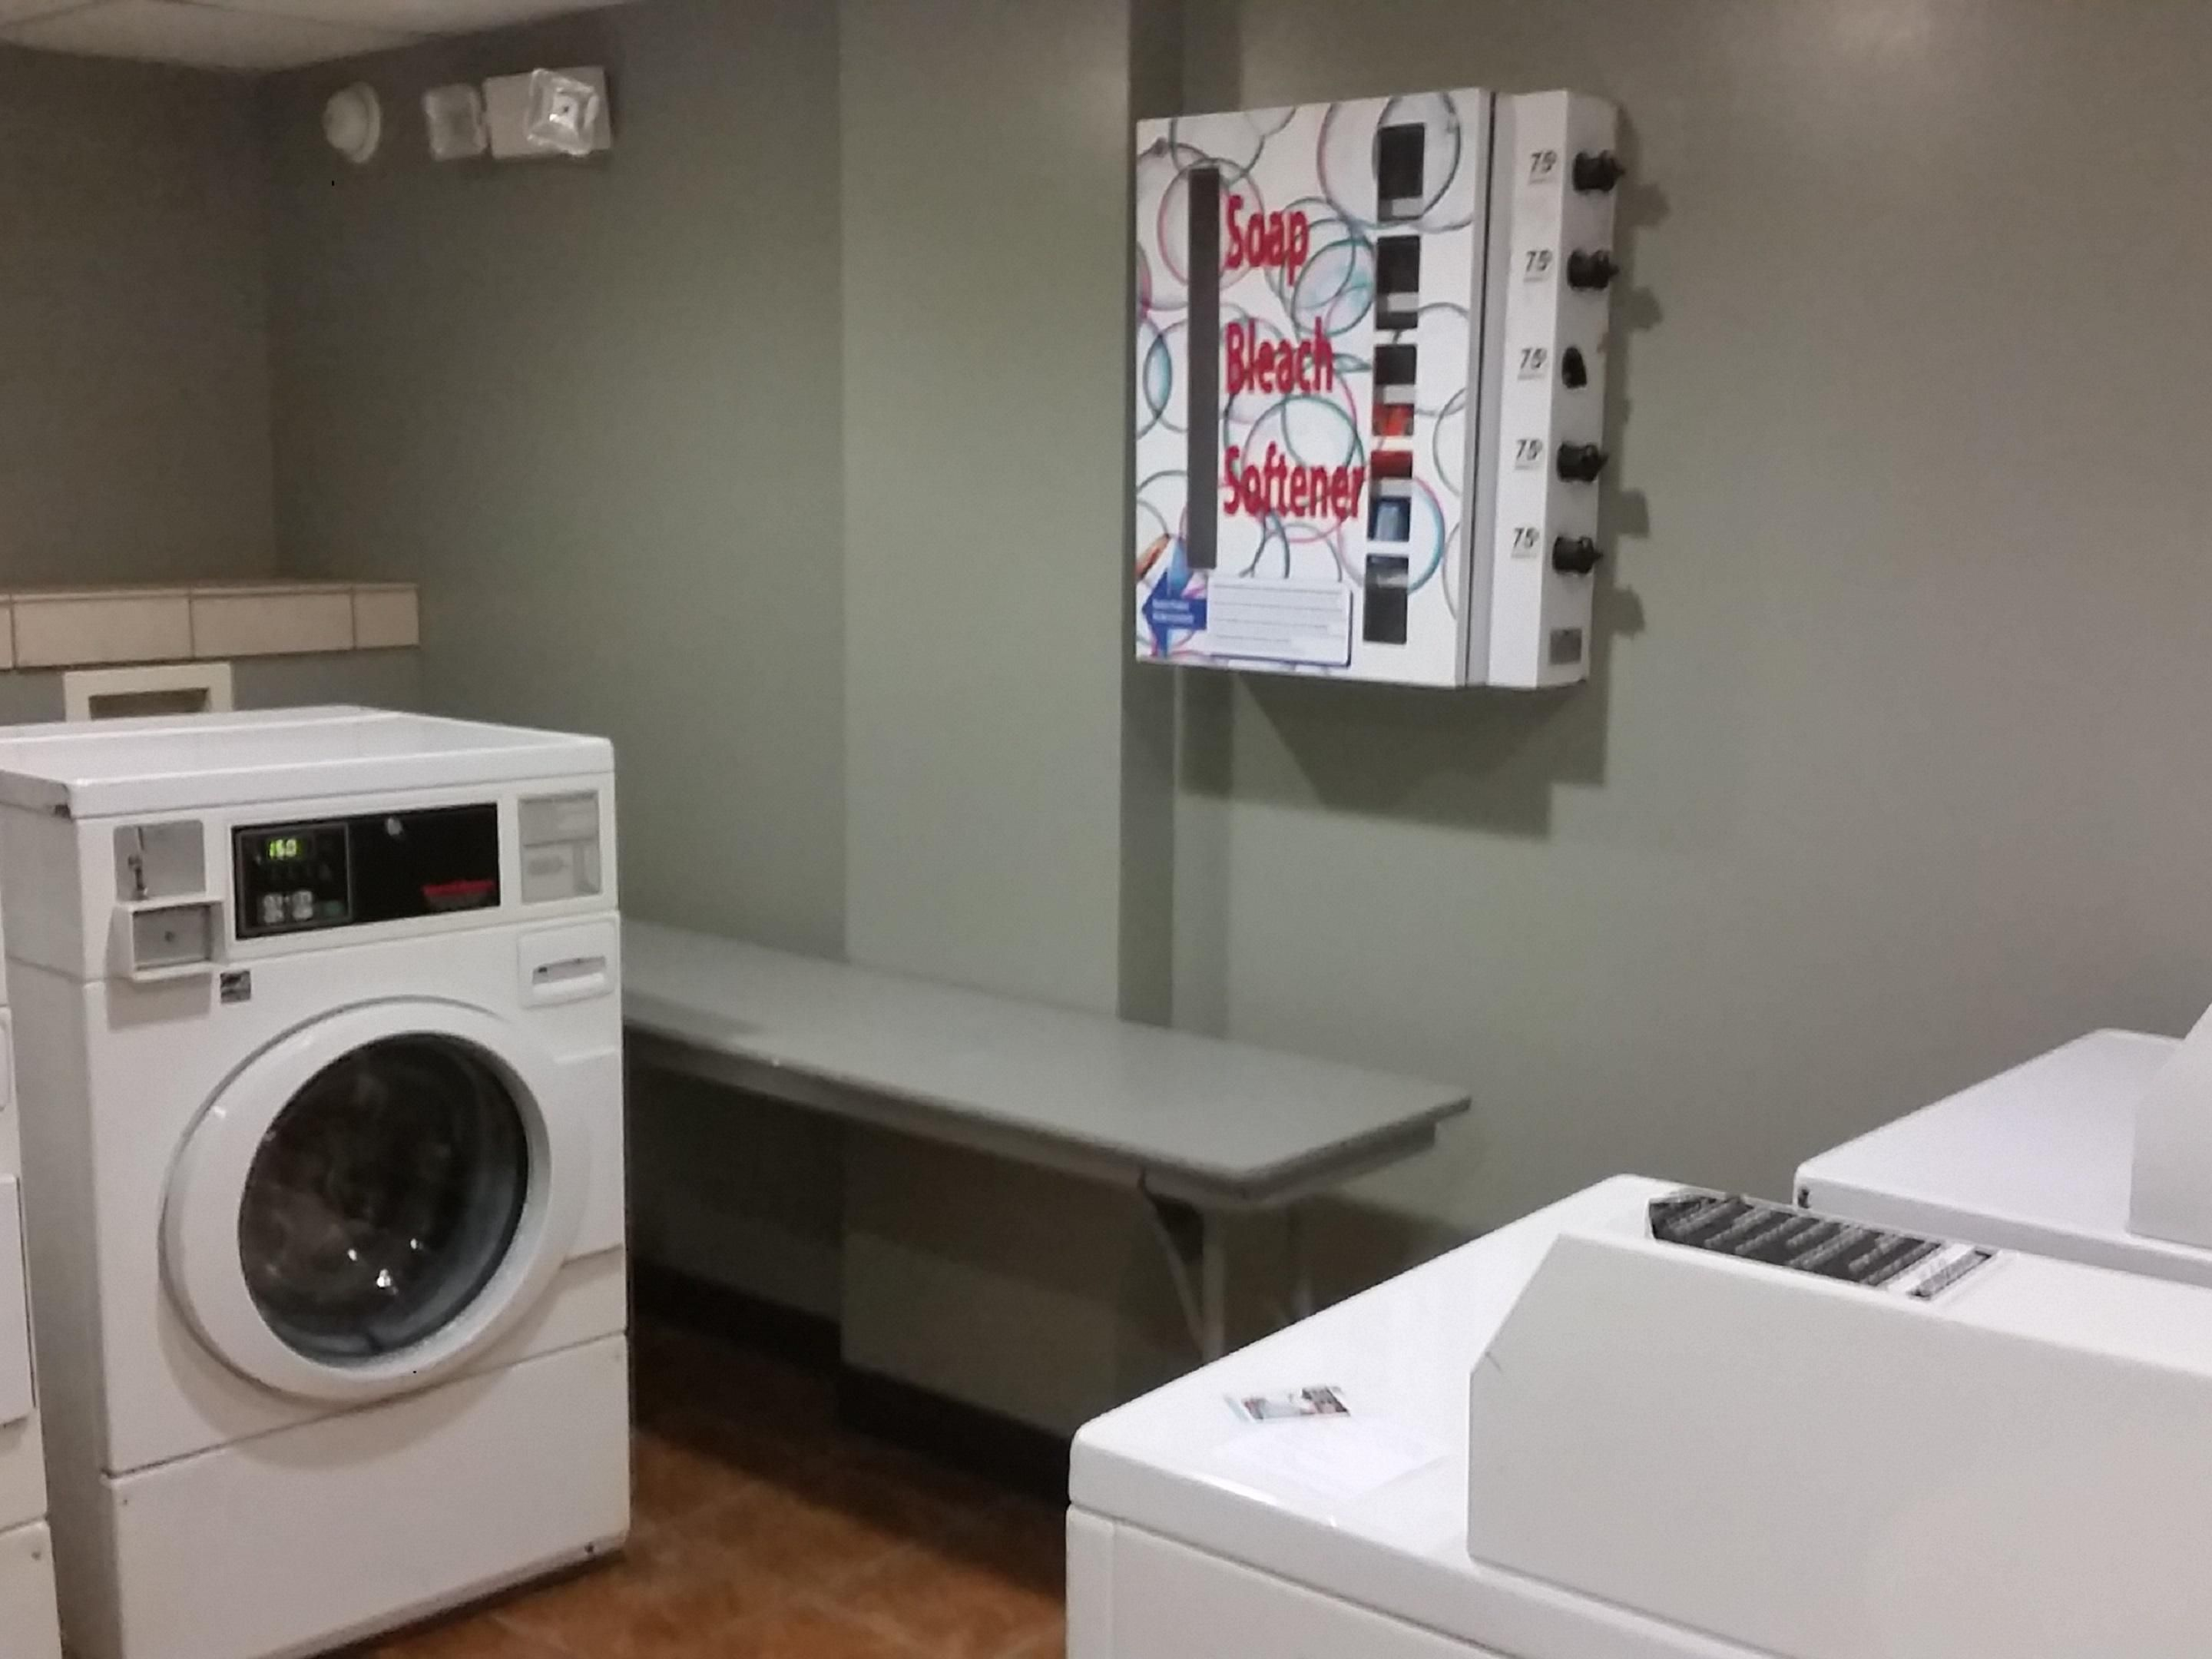 Holiday Inn Express Nashville Downtown Guest Laundry Facility